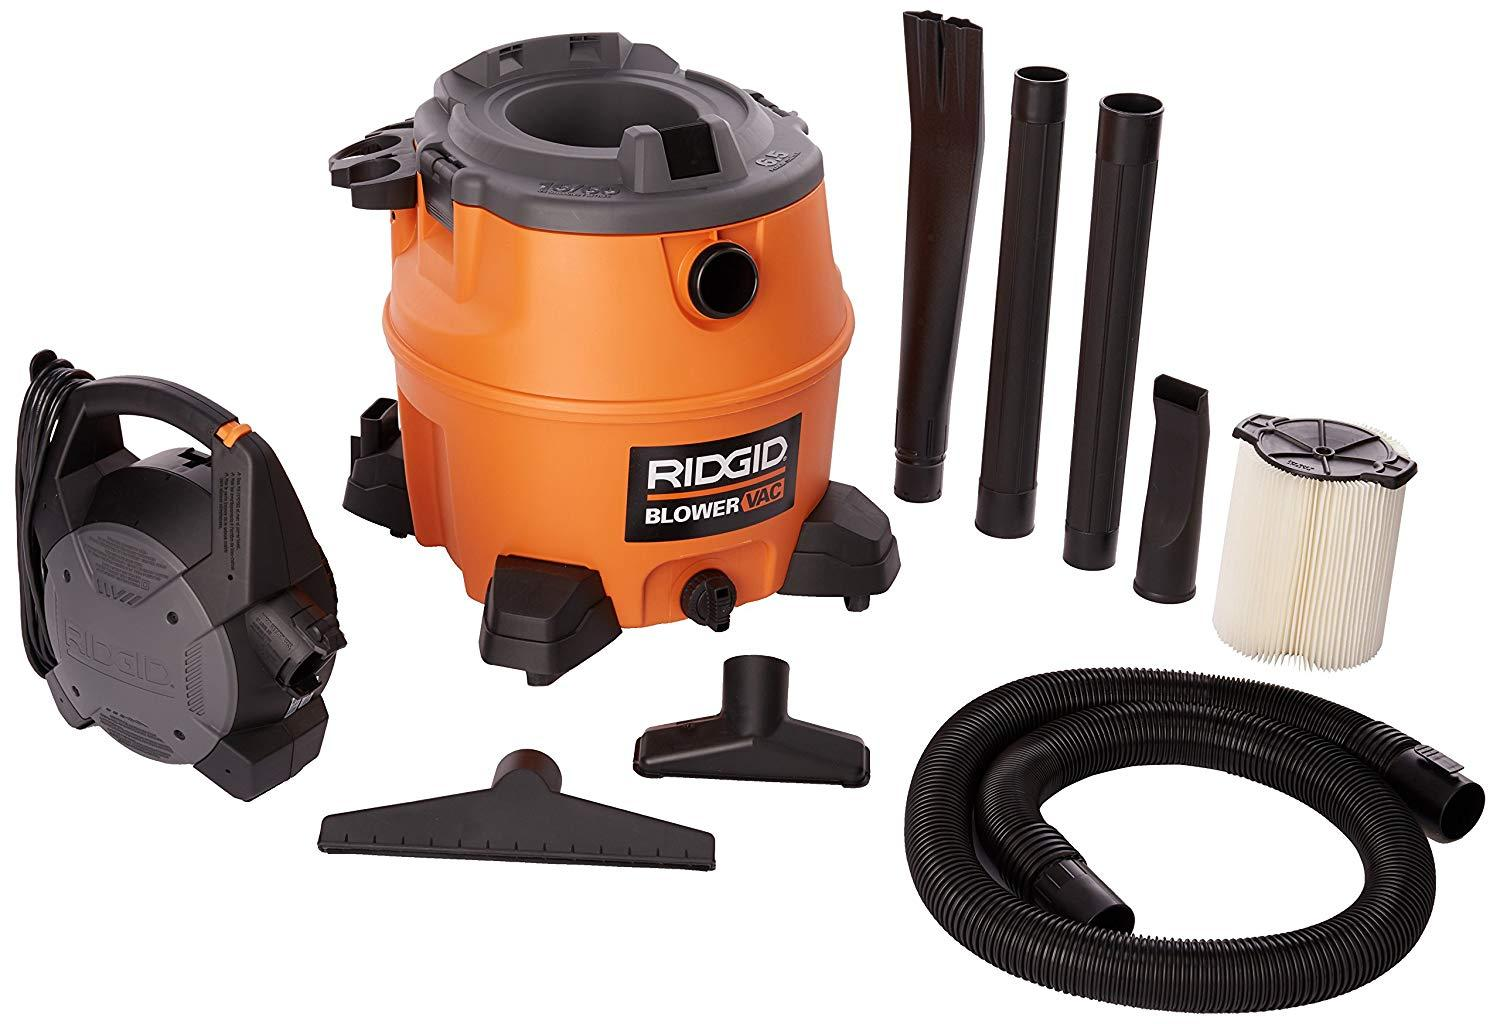 Ridgid Philippines Price List Vacuum Cleaner Wrench 12r Npt Alloy Dies 2 Threader 37850 Wd1680ex 16gal Wet And Dry With Detachable Blower